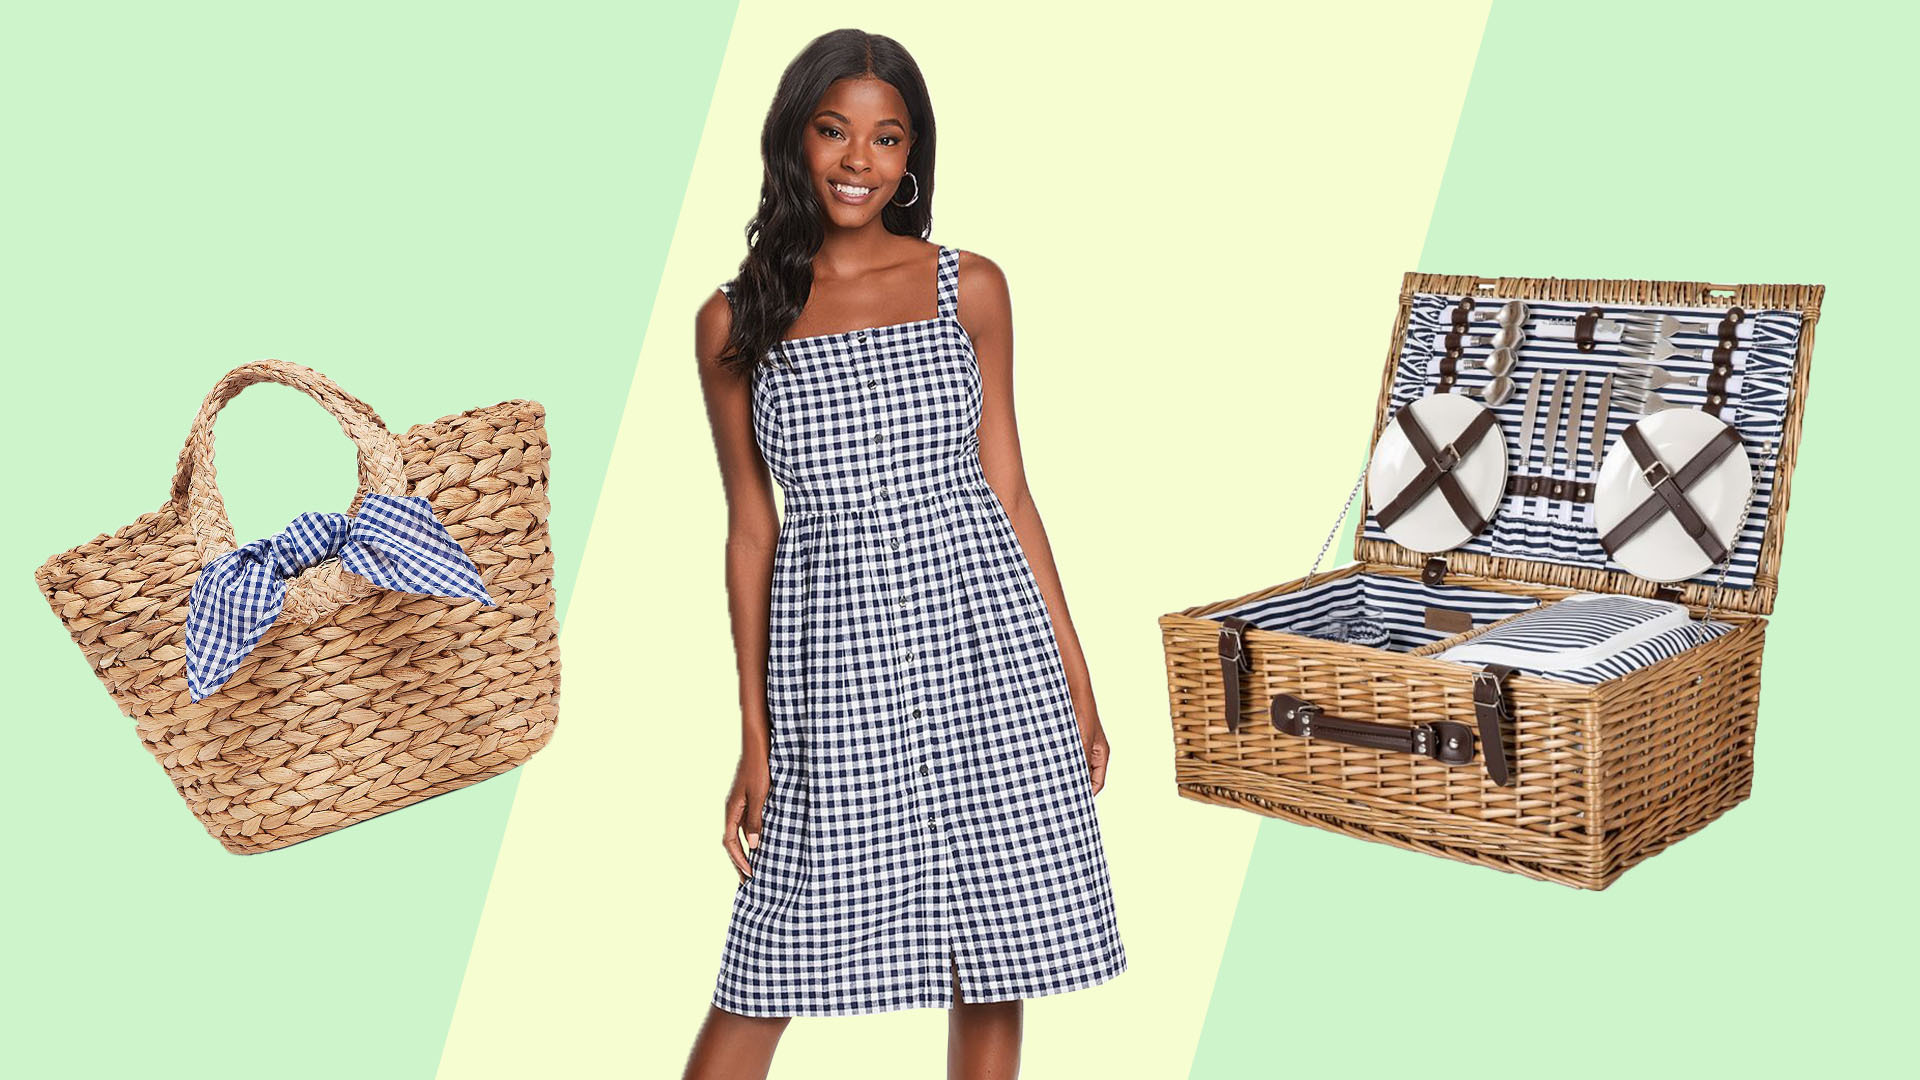 Cottagecore Aesthetic Fashion And Accessories Picks Cnn Underscored